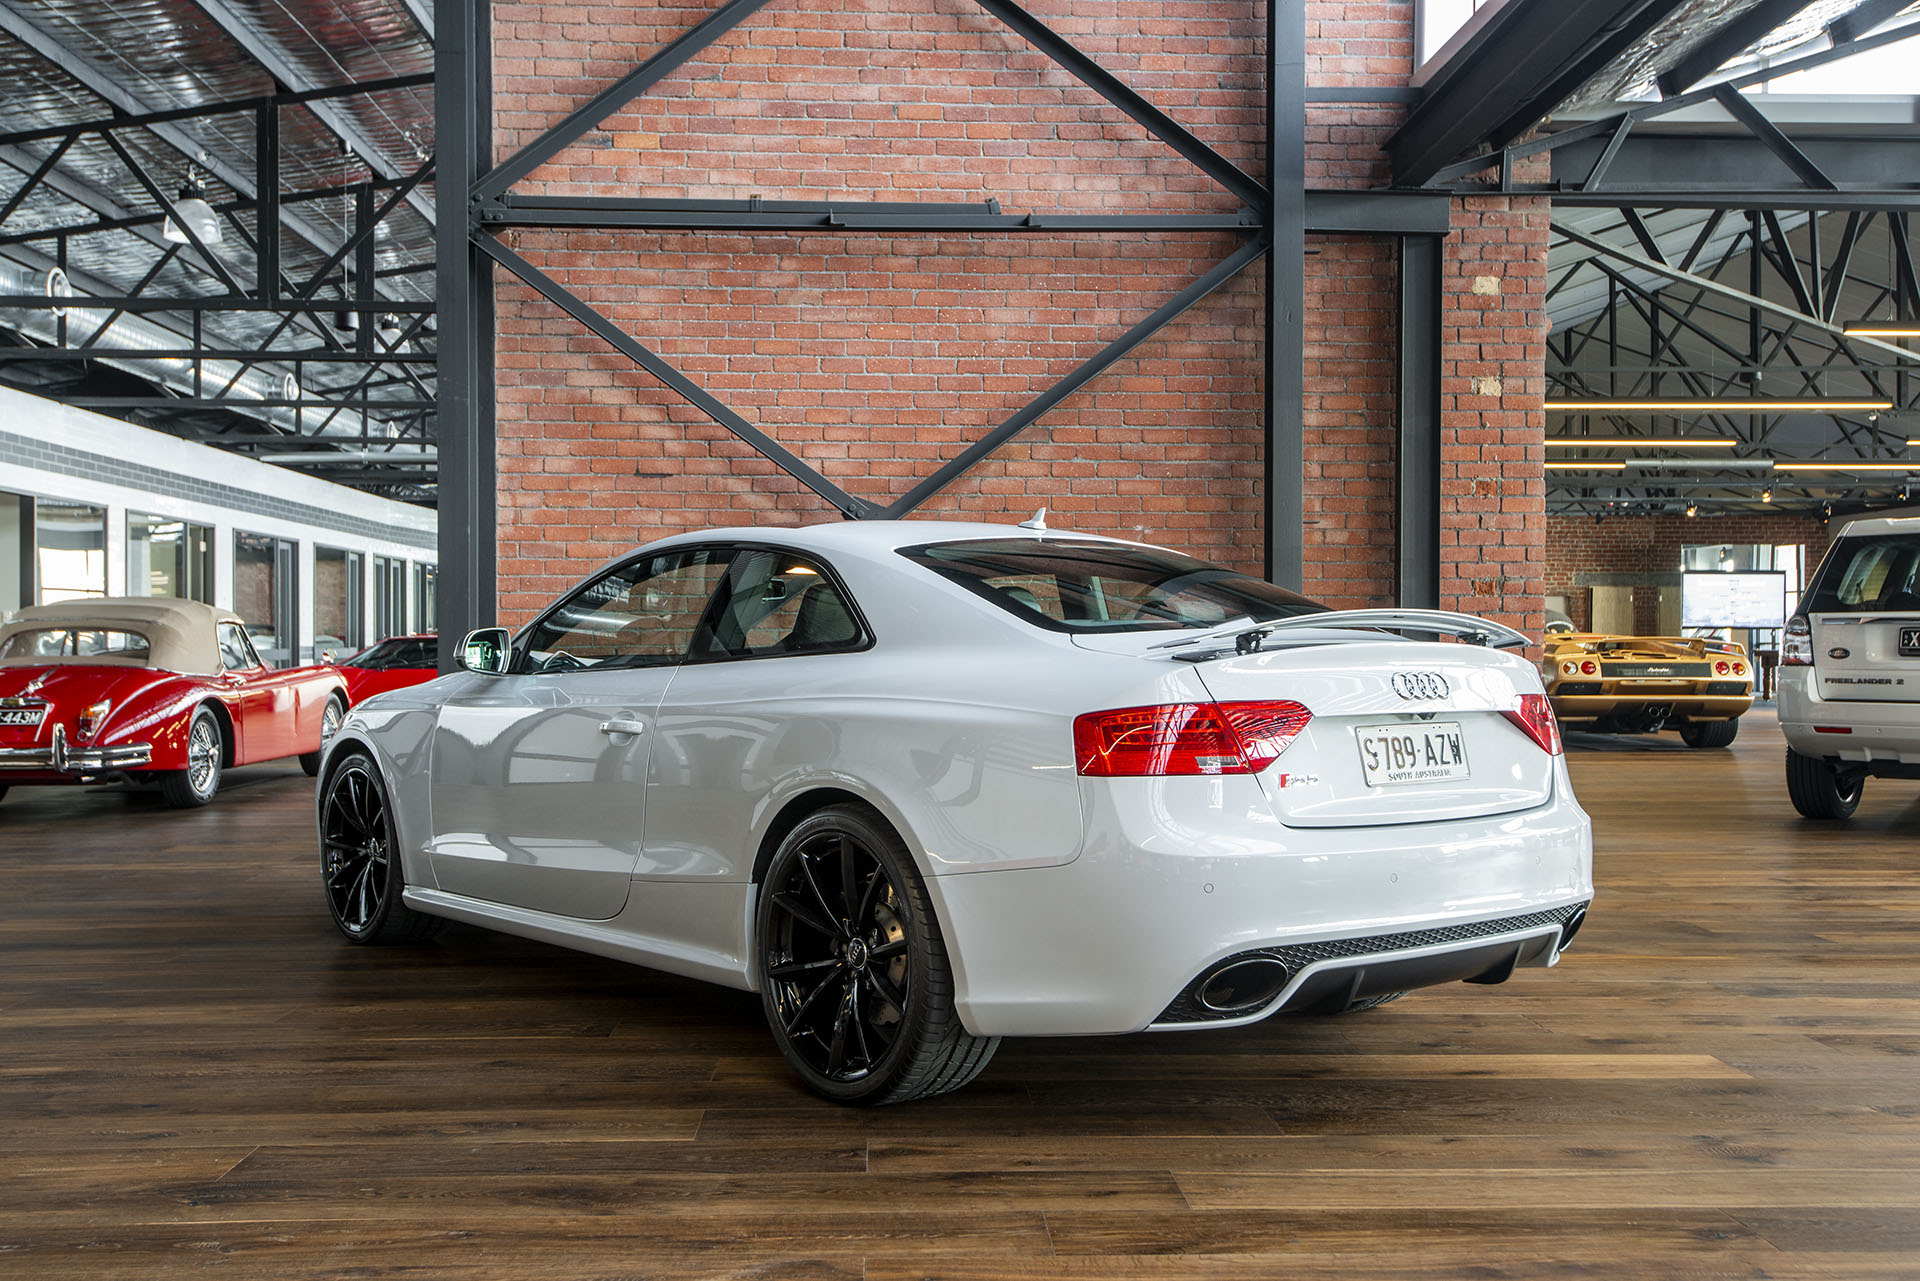 2013 audi rs5 8t coupe my14 richmonds classic and